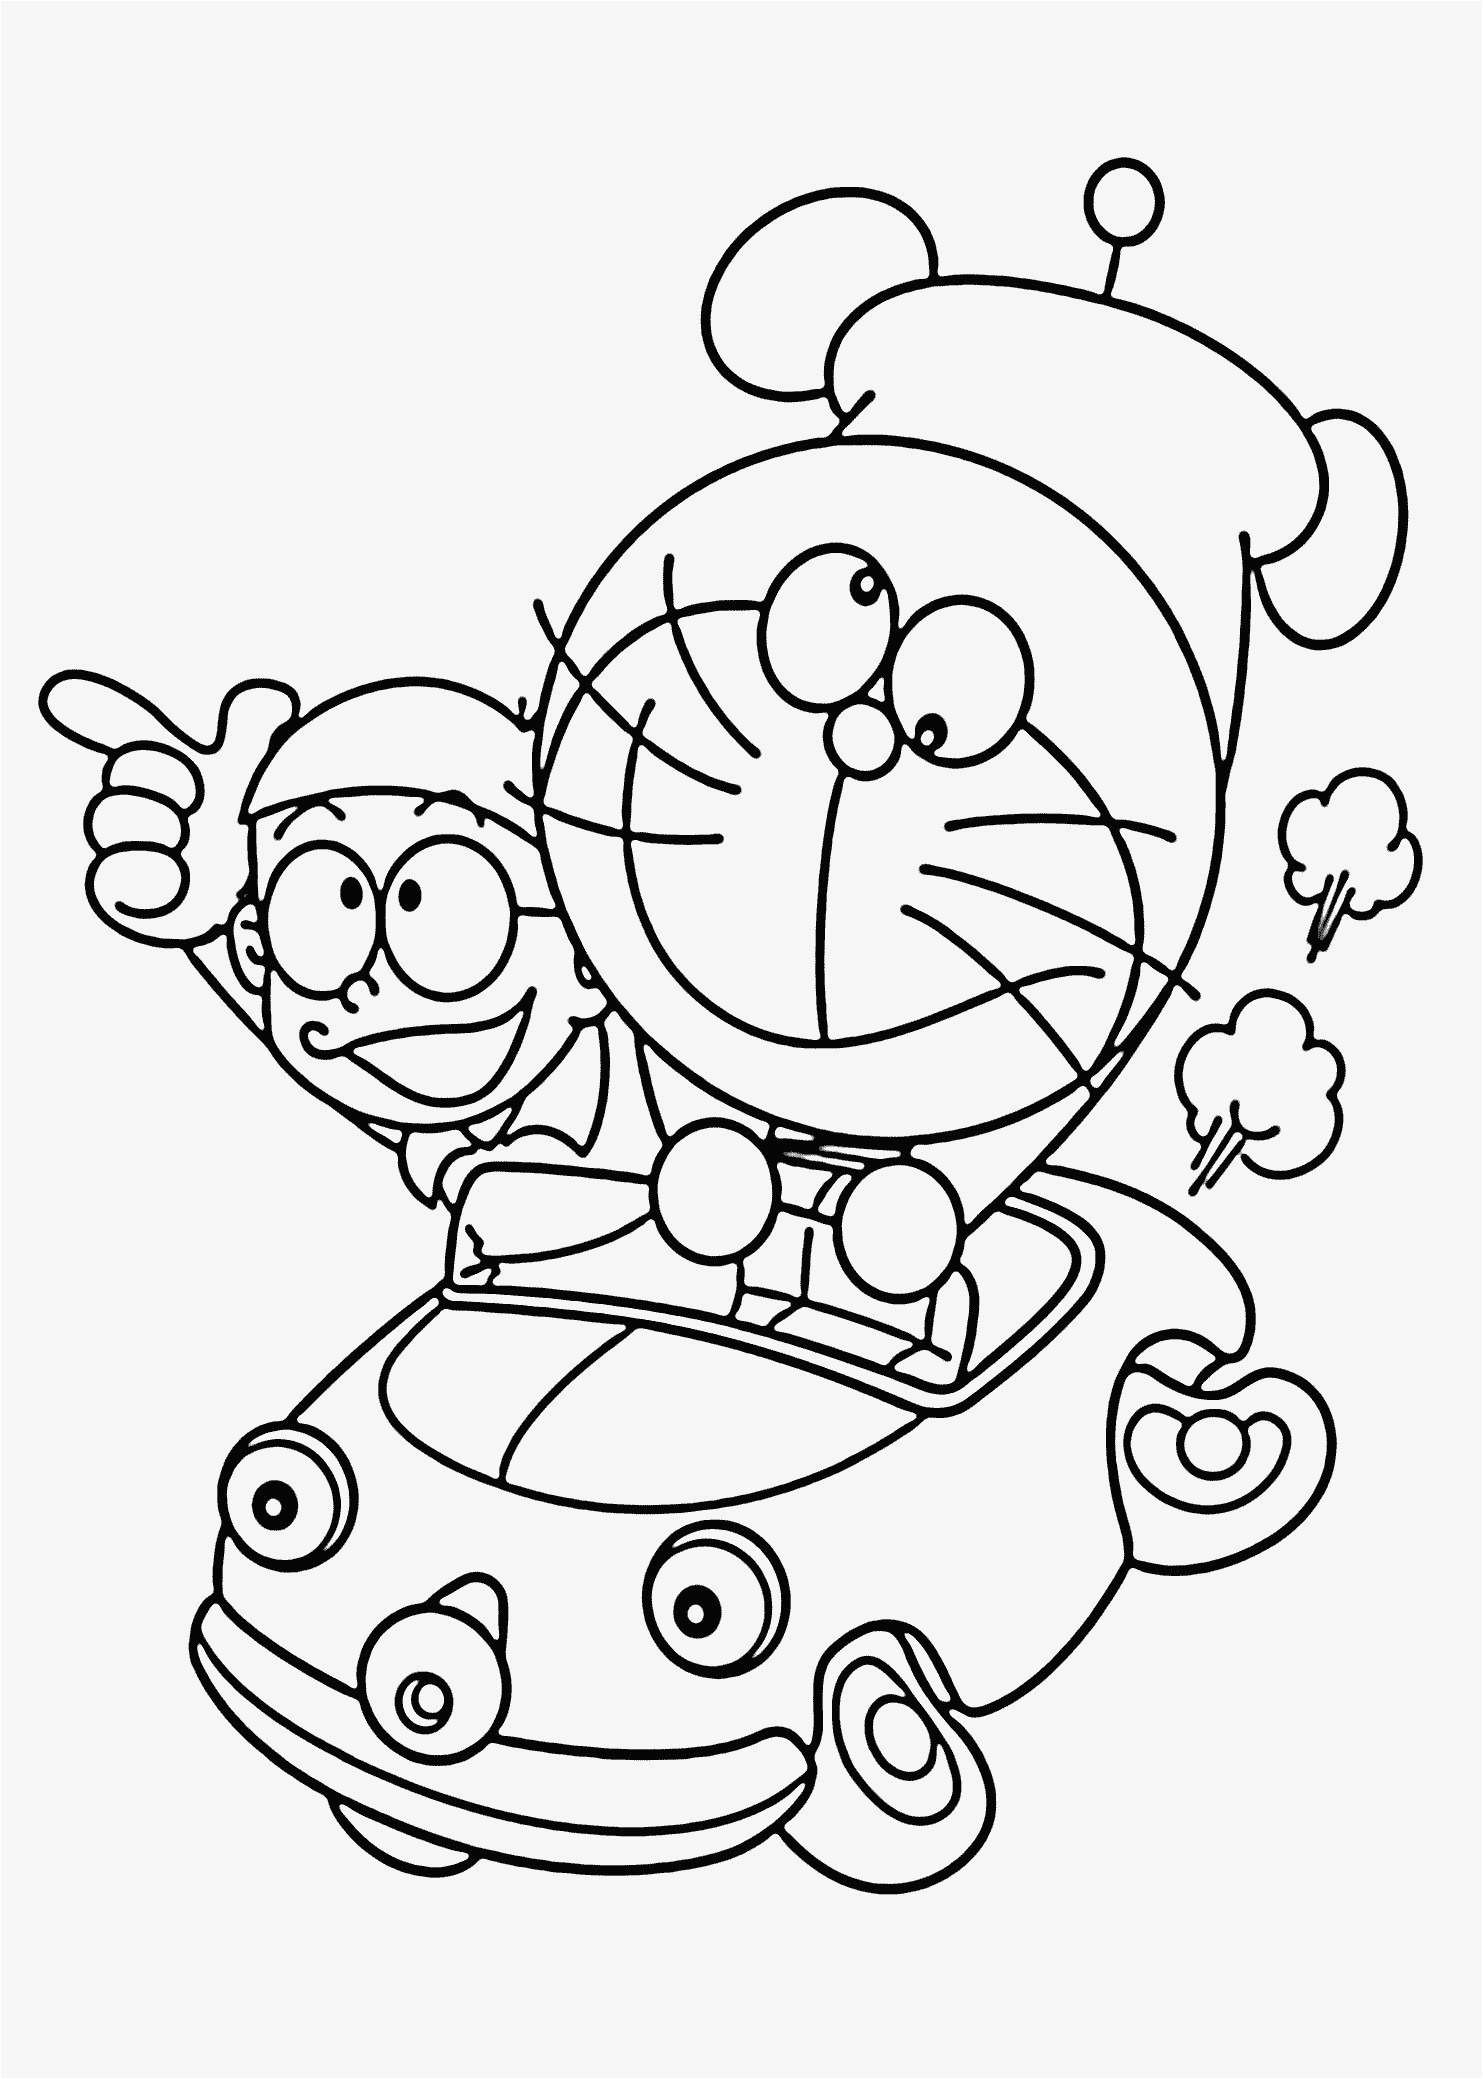 Cute Pig Coloring Pages  Download 10d - Free For kids